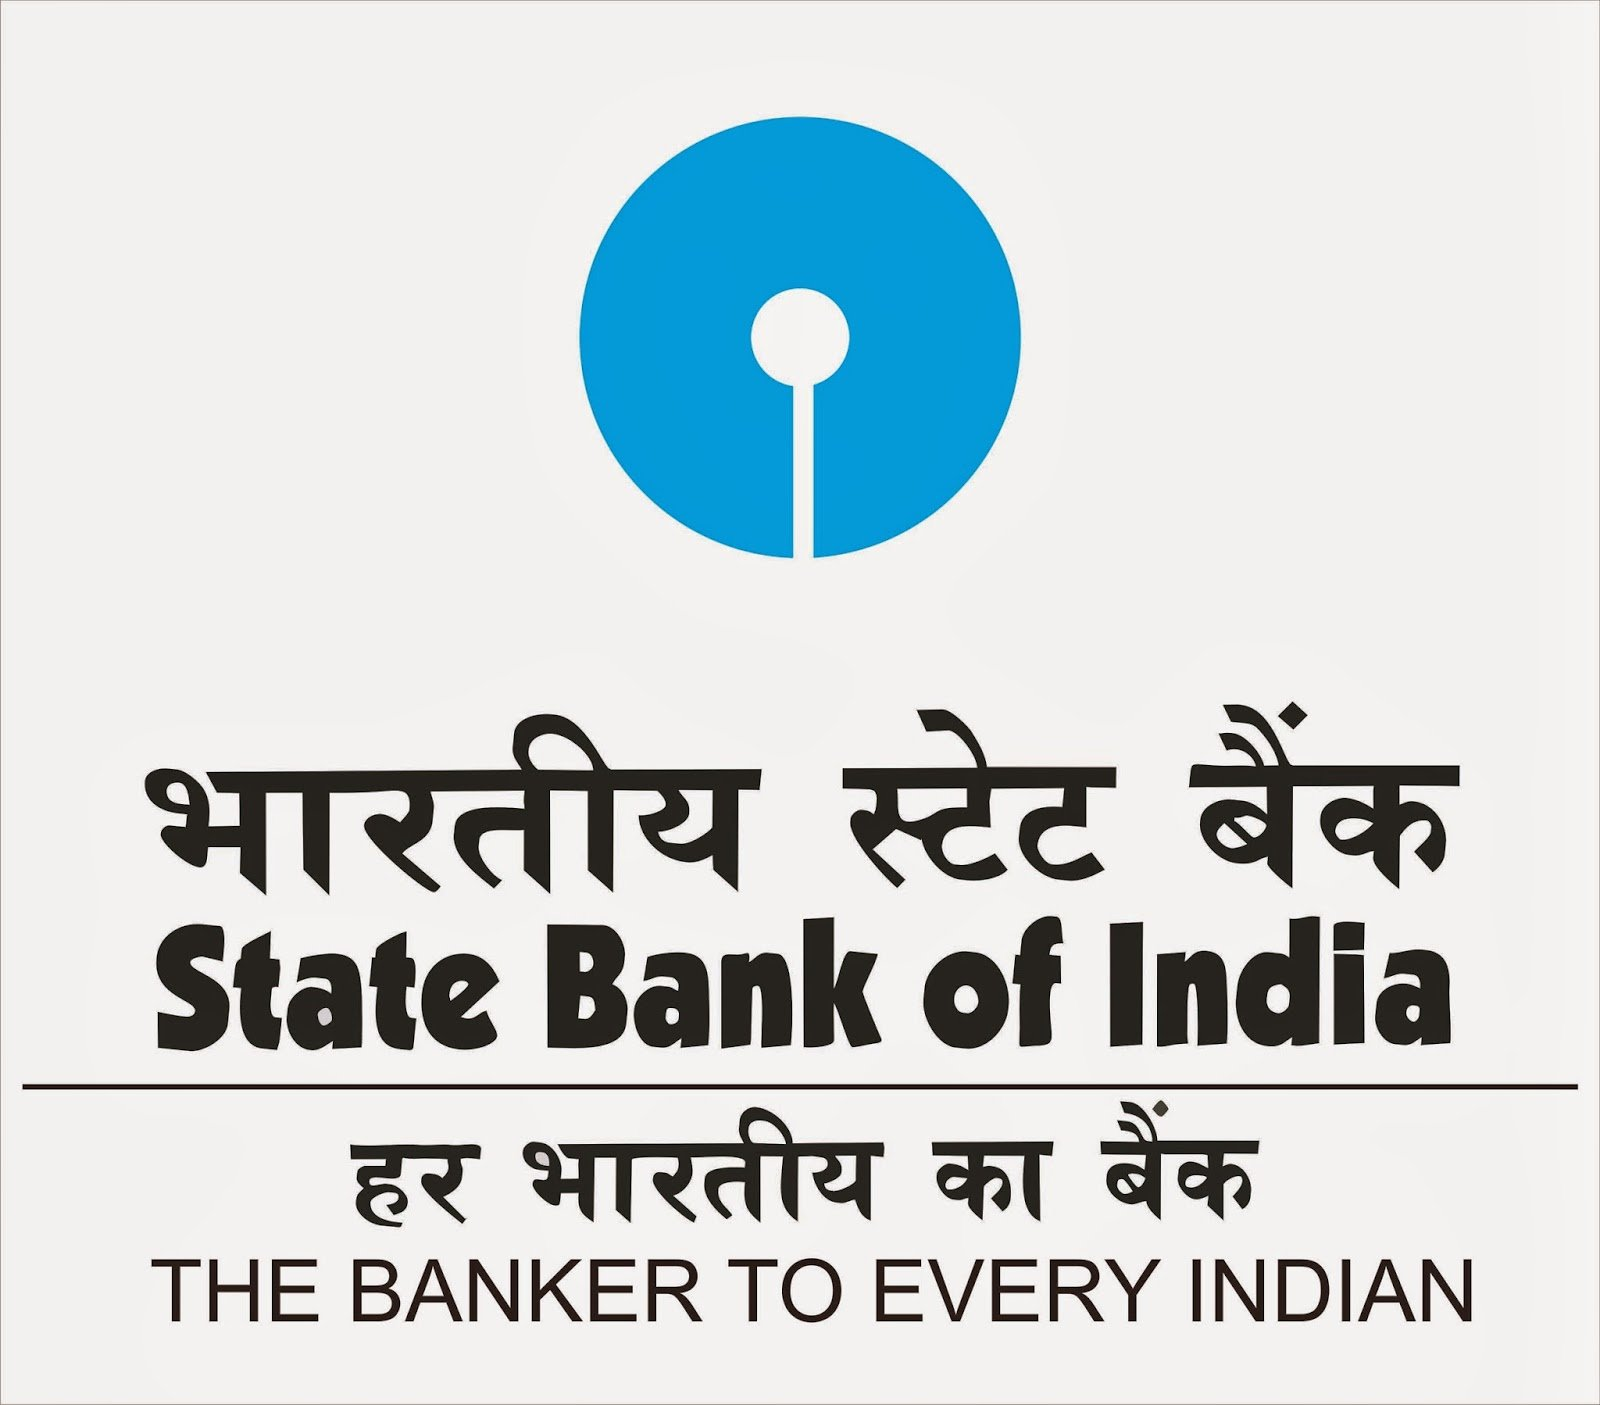 sbi po interview questions 2015 career anna sbi po interview questions 2015